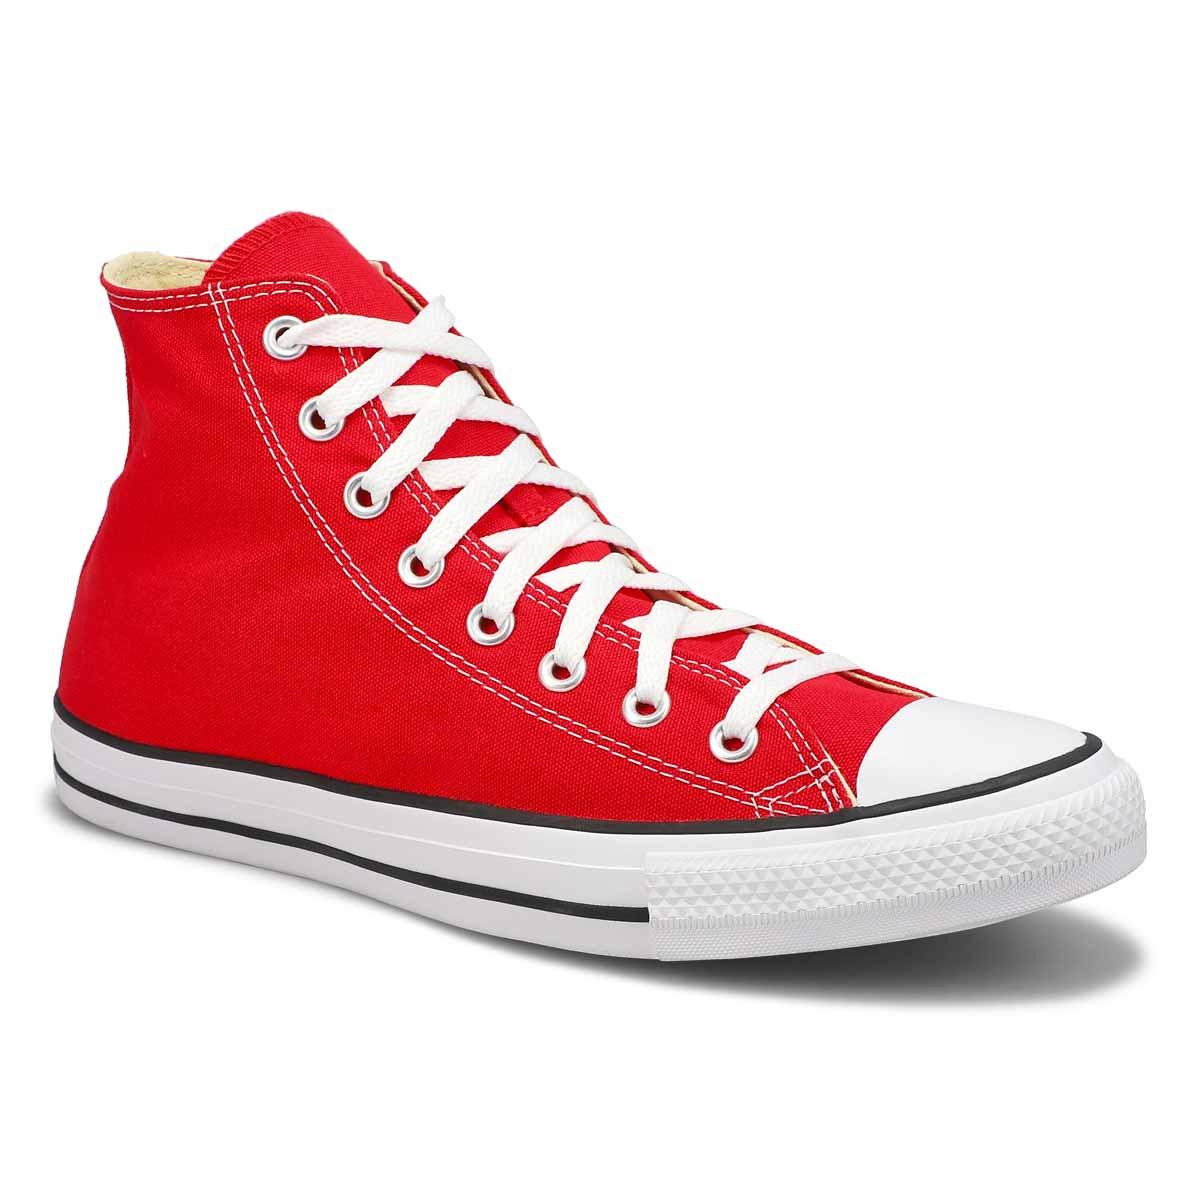 Mns CT All Star Core Hi red high top snk